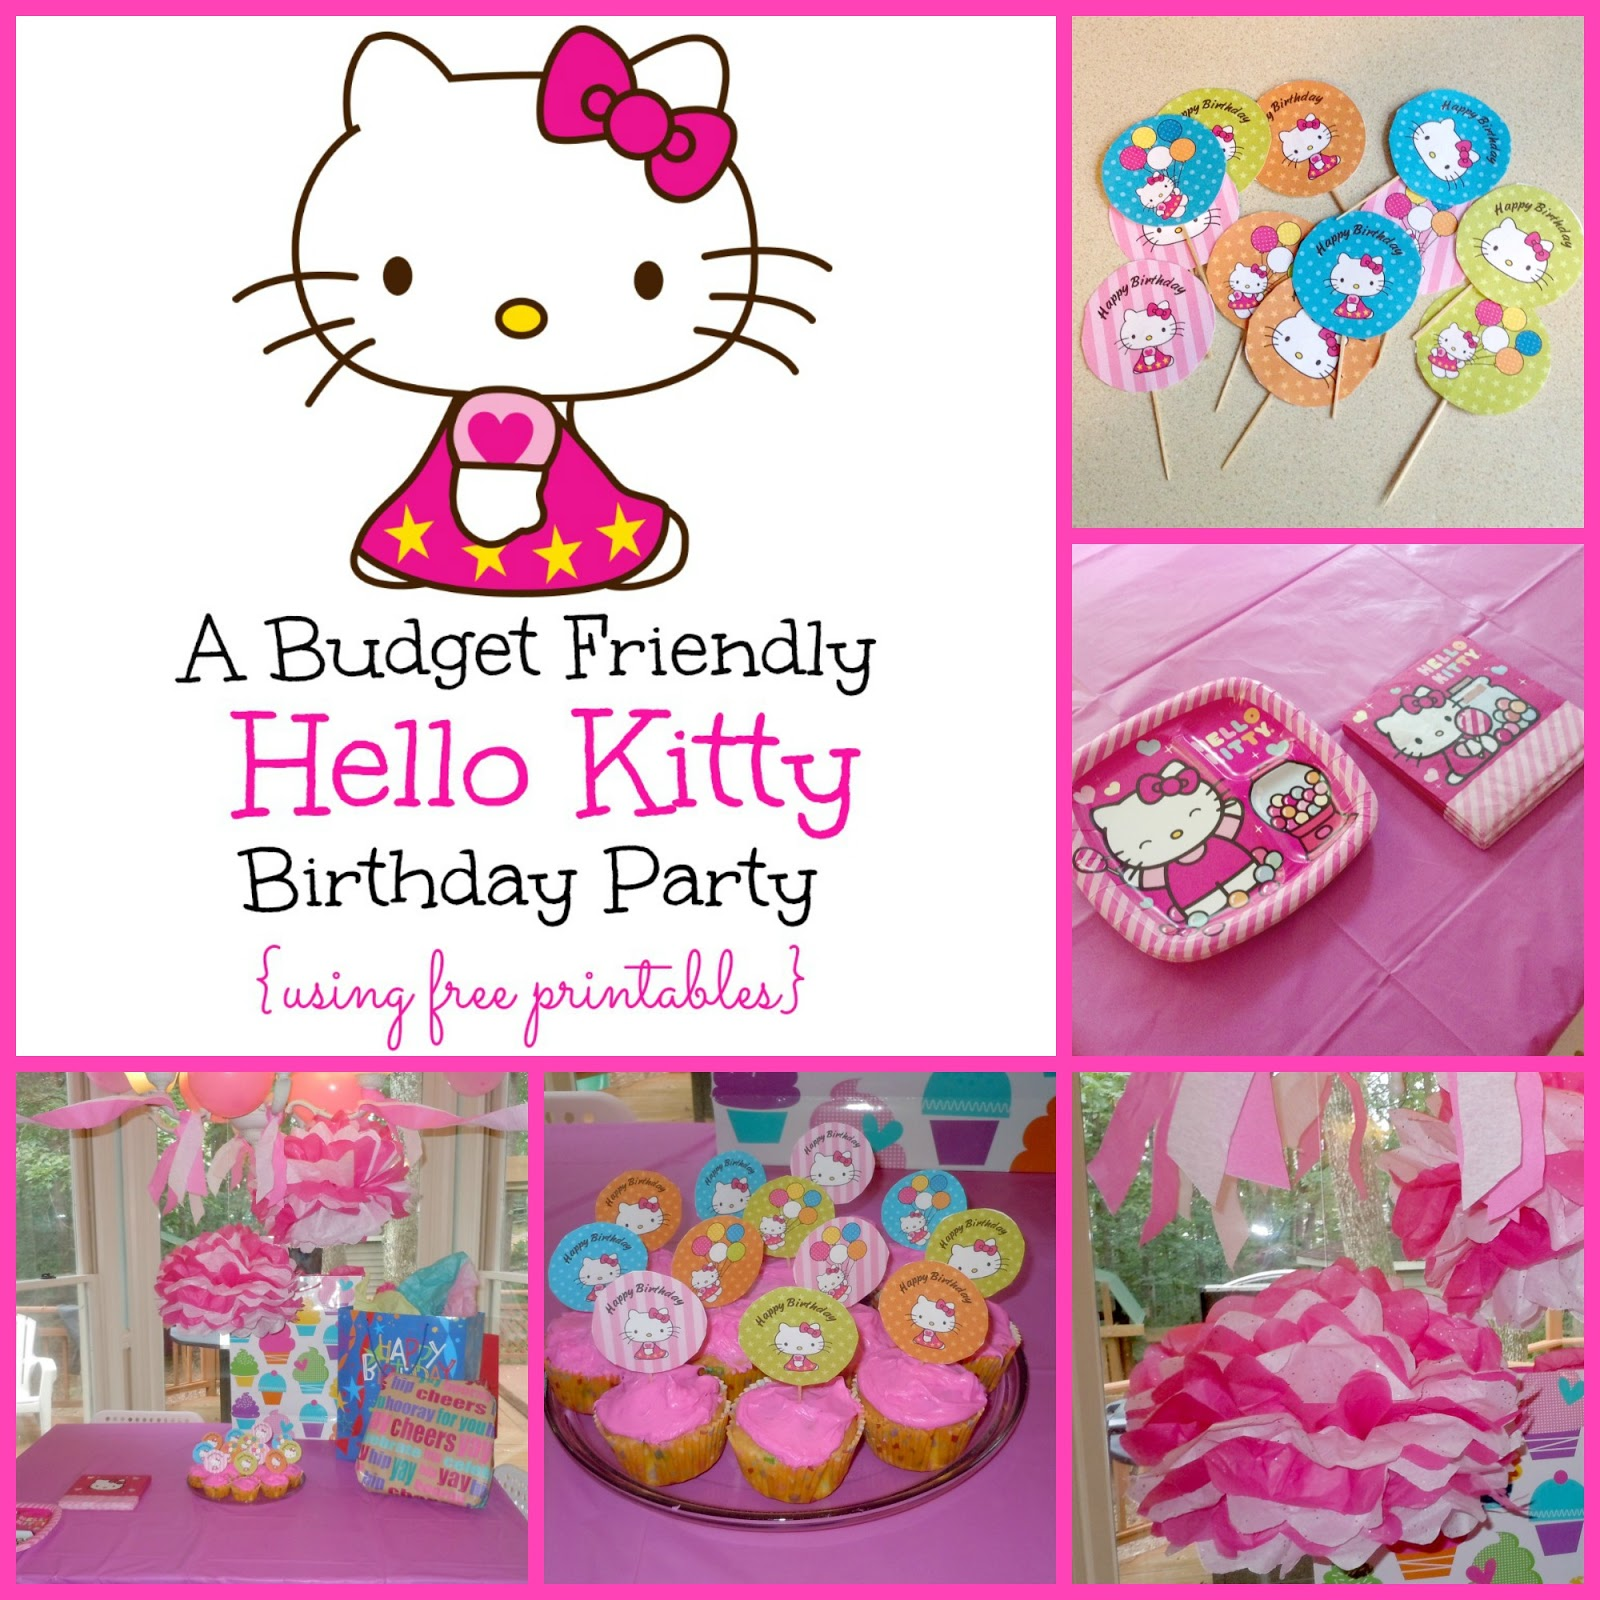 6 Images of Hello Kitty Birthday Party Printables